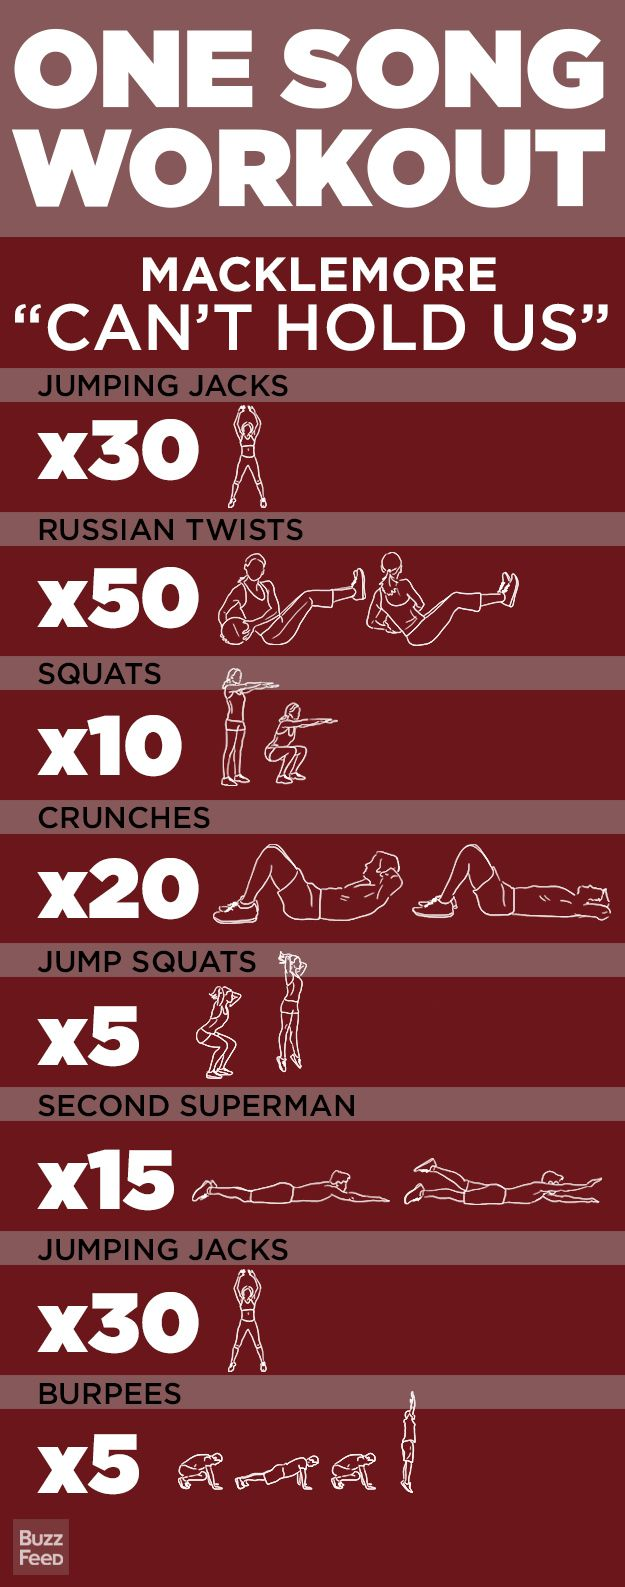 One song workouts - Imgur